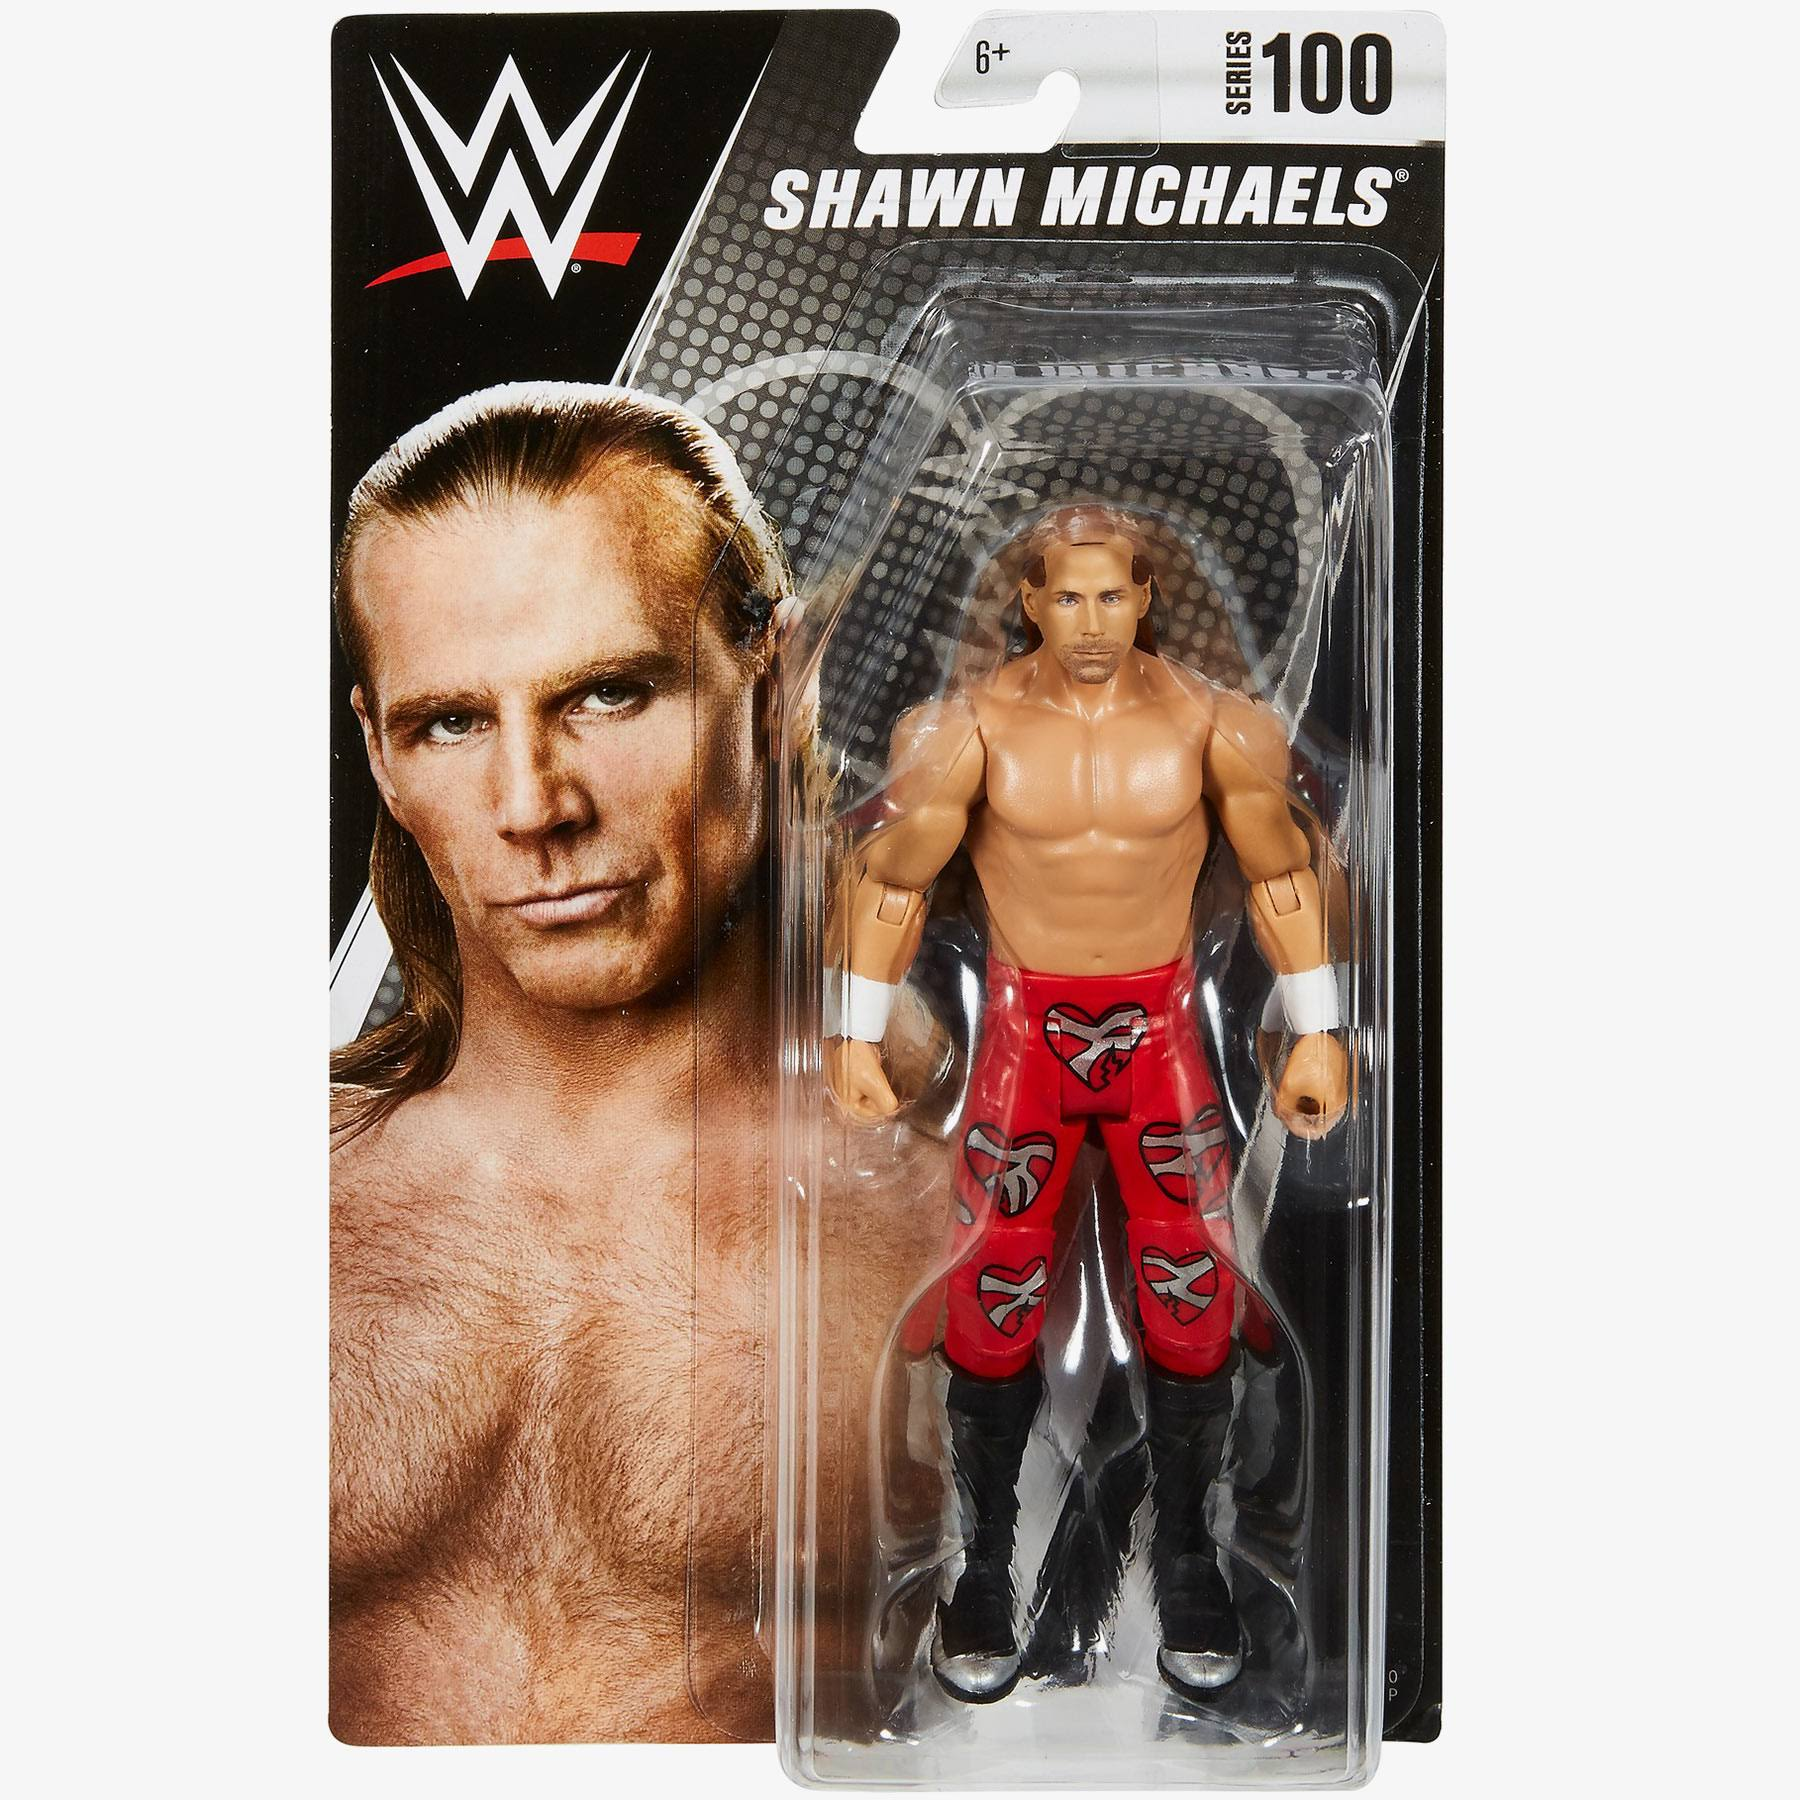 WWE Basic Series #100 Action Figure - Shawn Michaels